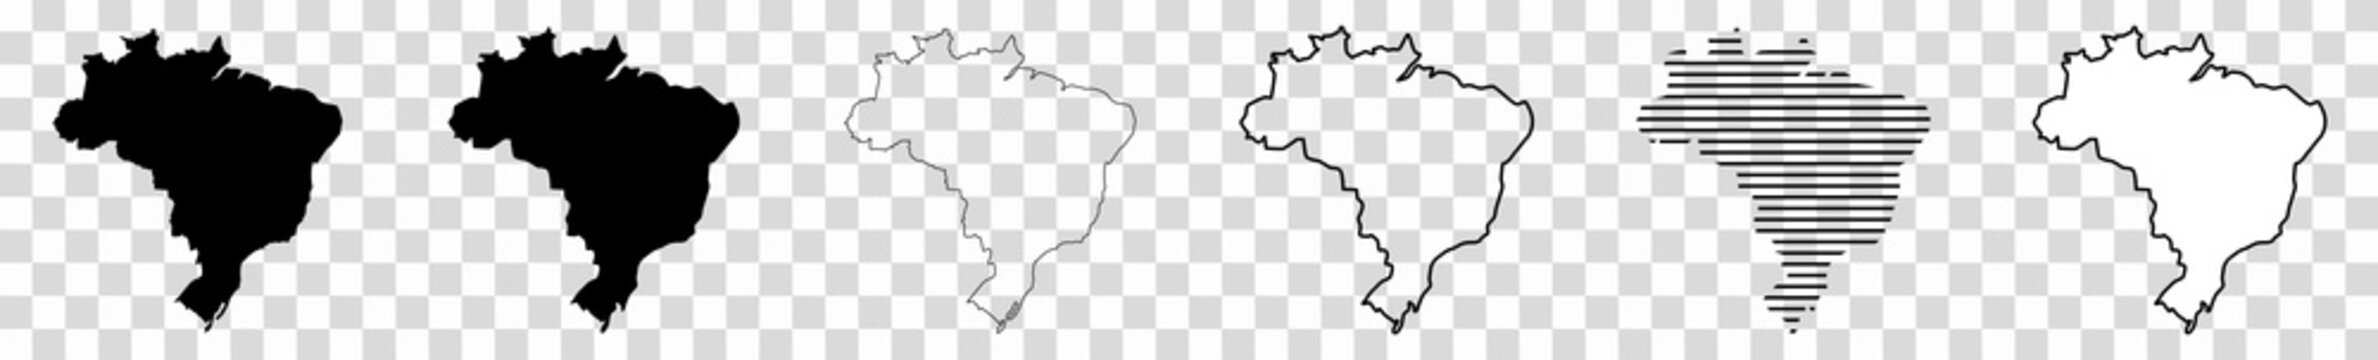 Brazil Map Black | Brazilian Border | State Country | Transparent Isolated | Variations